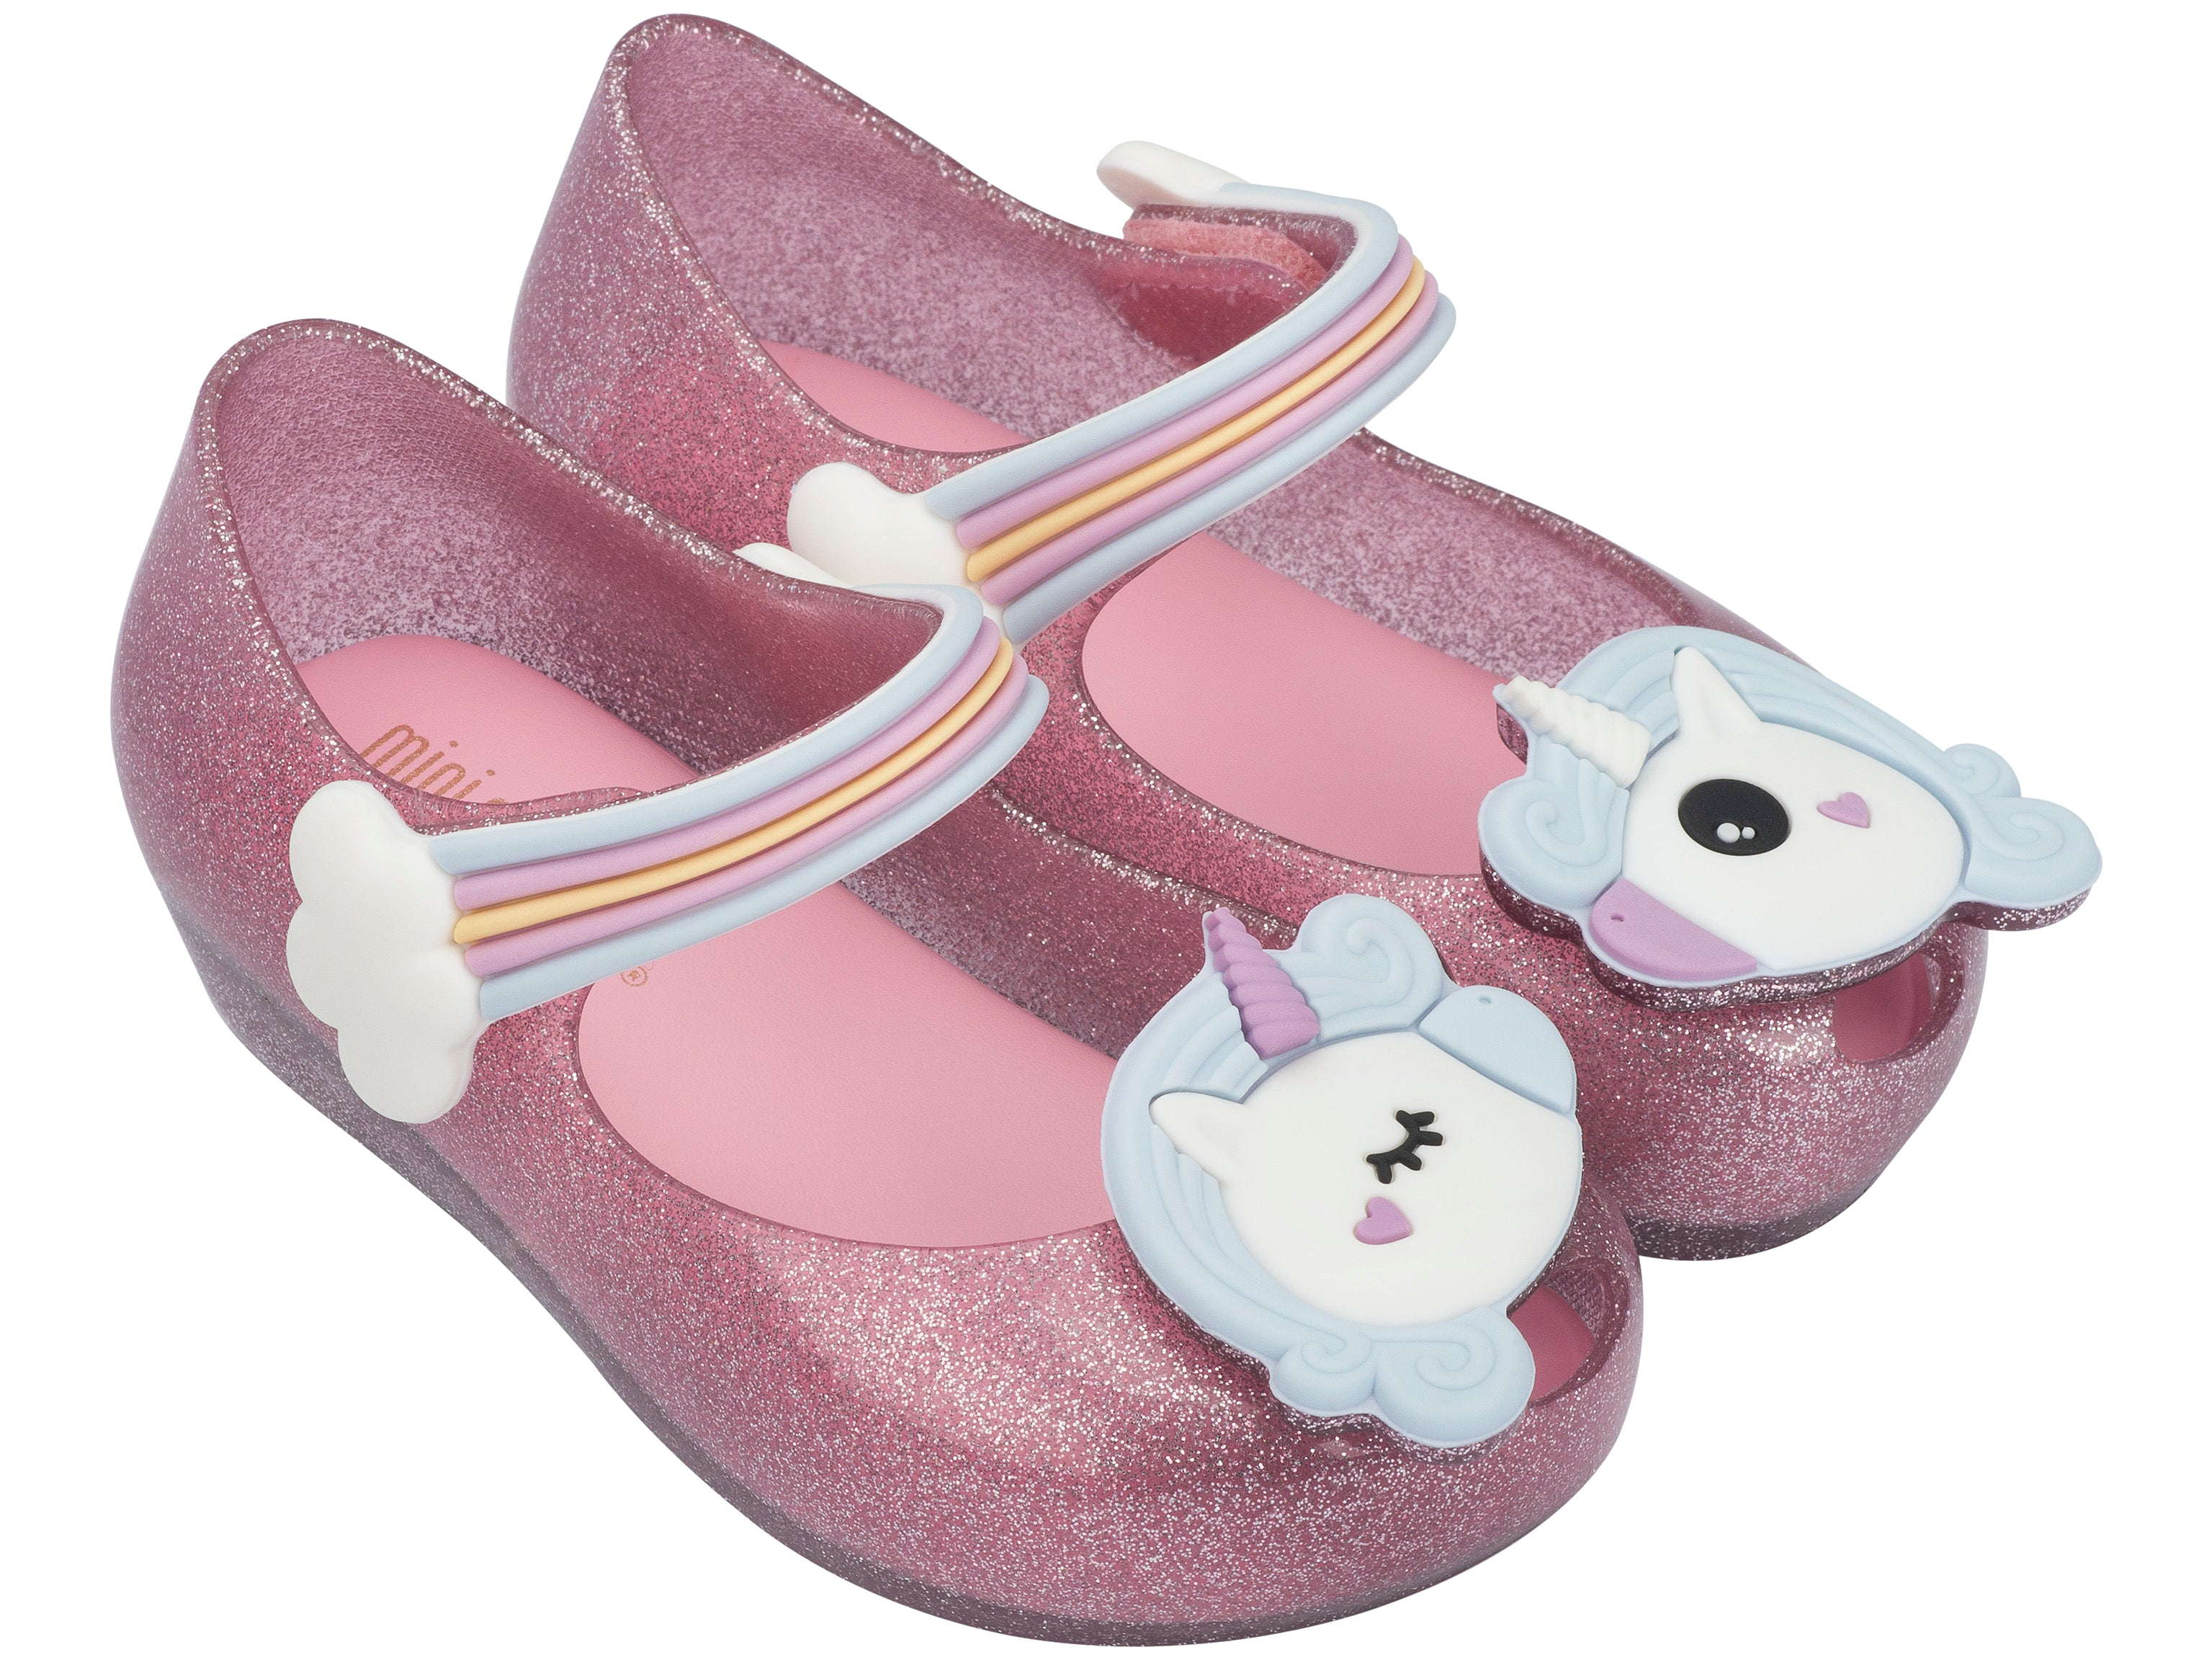 cdec877828c Mini Melissa Ultragirl Unicorn Pink Glitter – Little Troopers Shoes